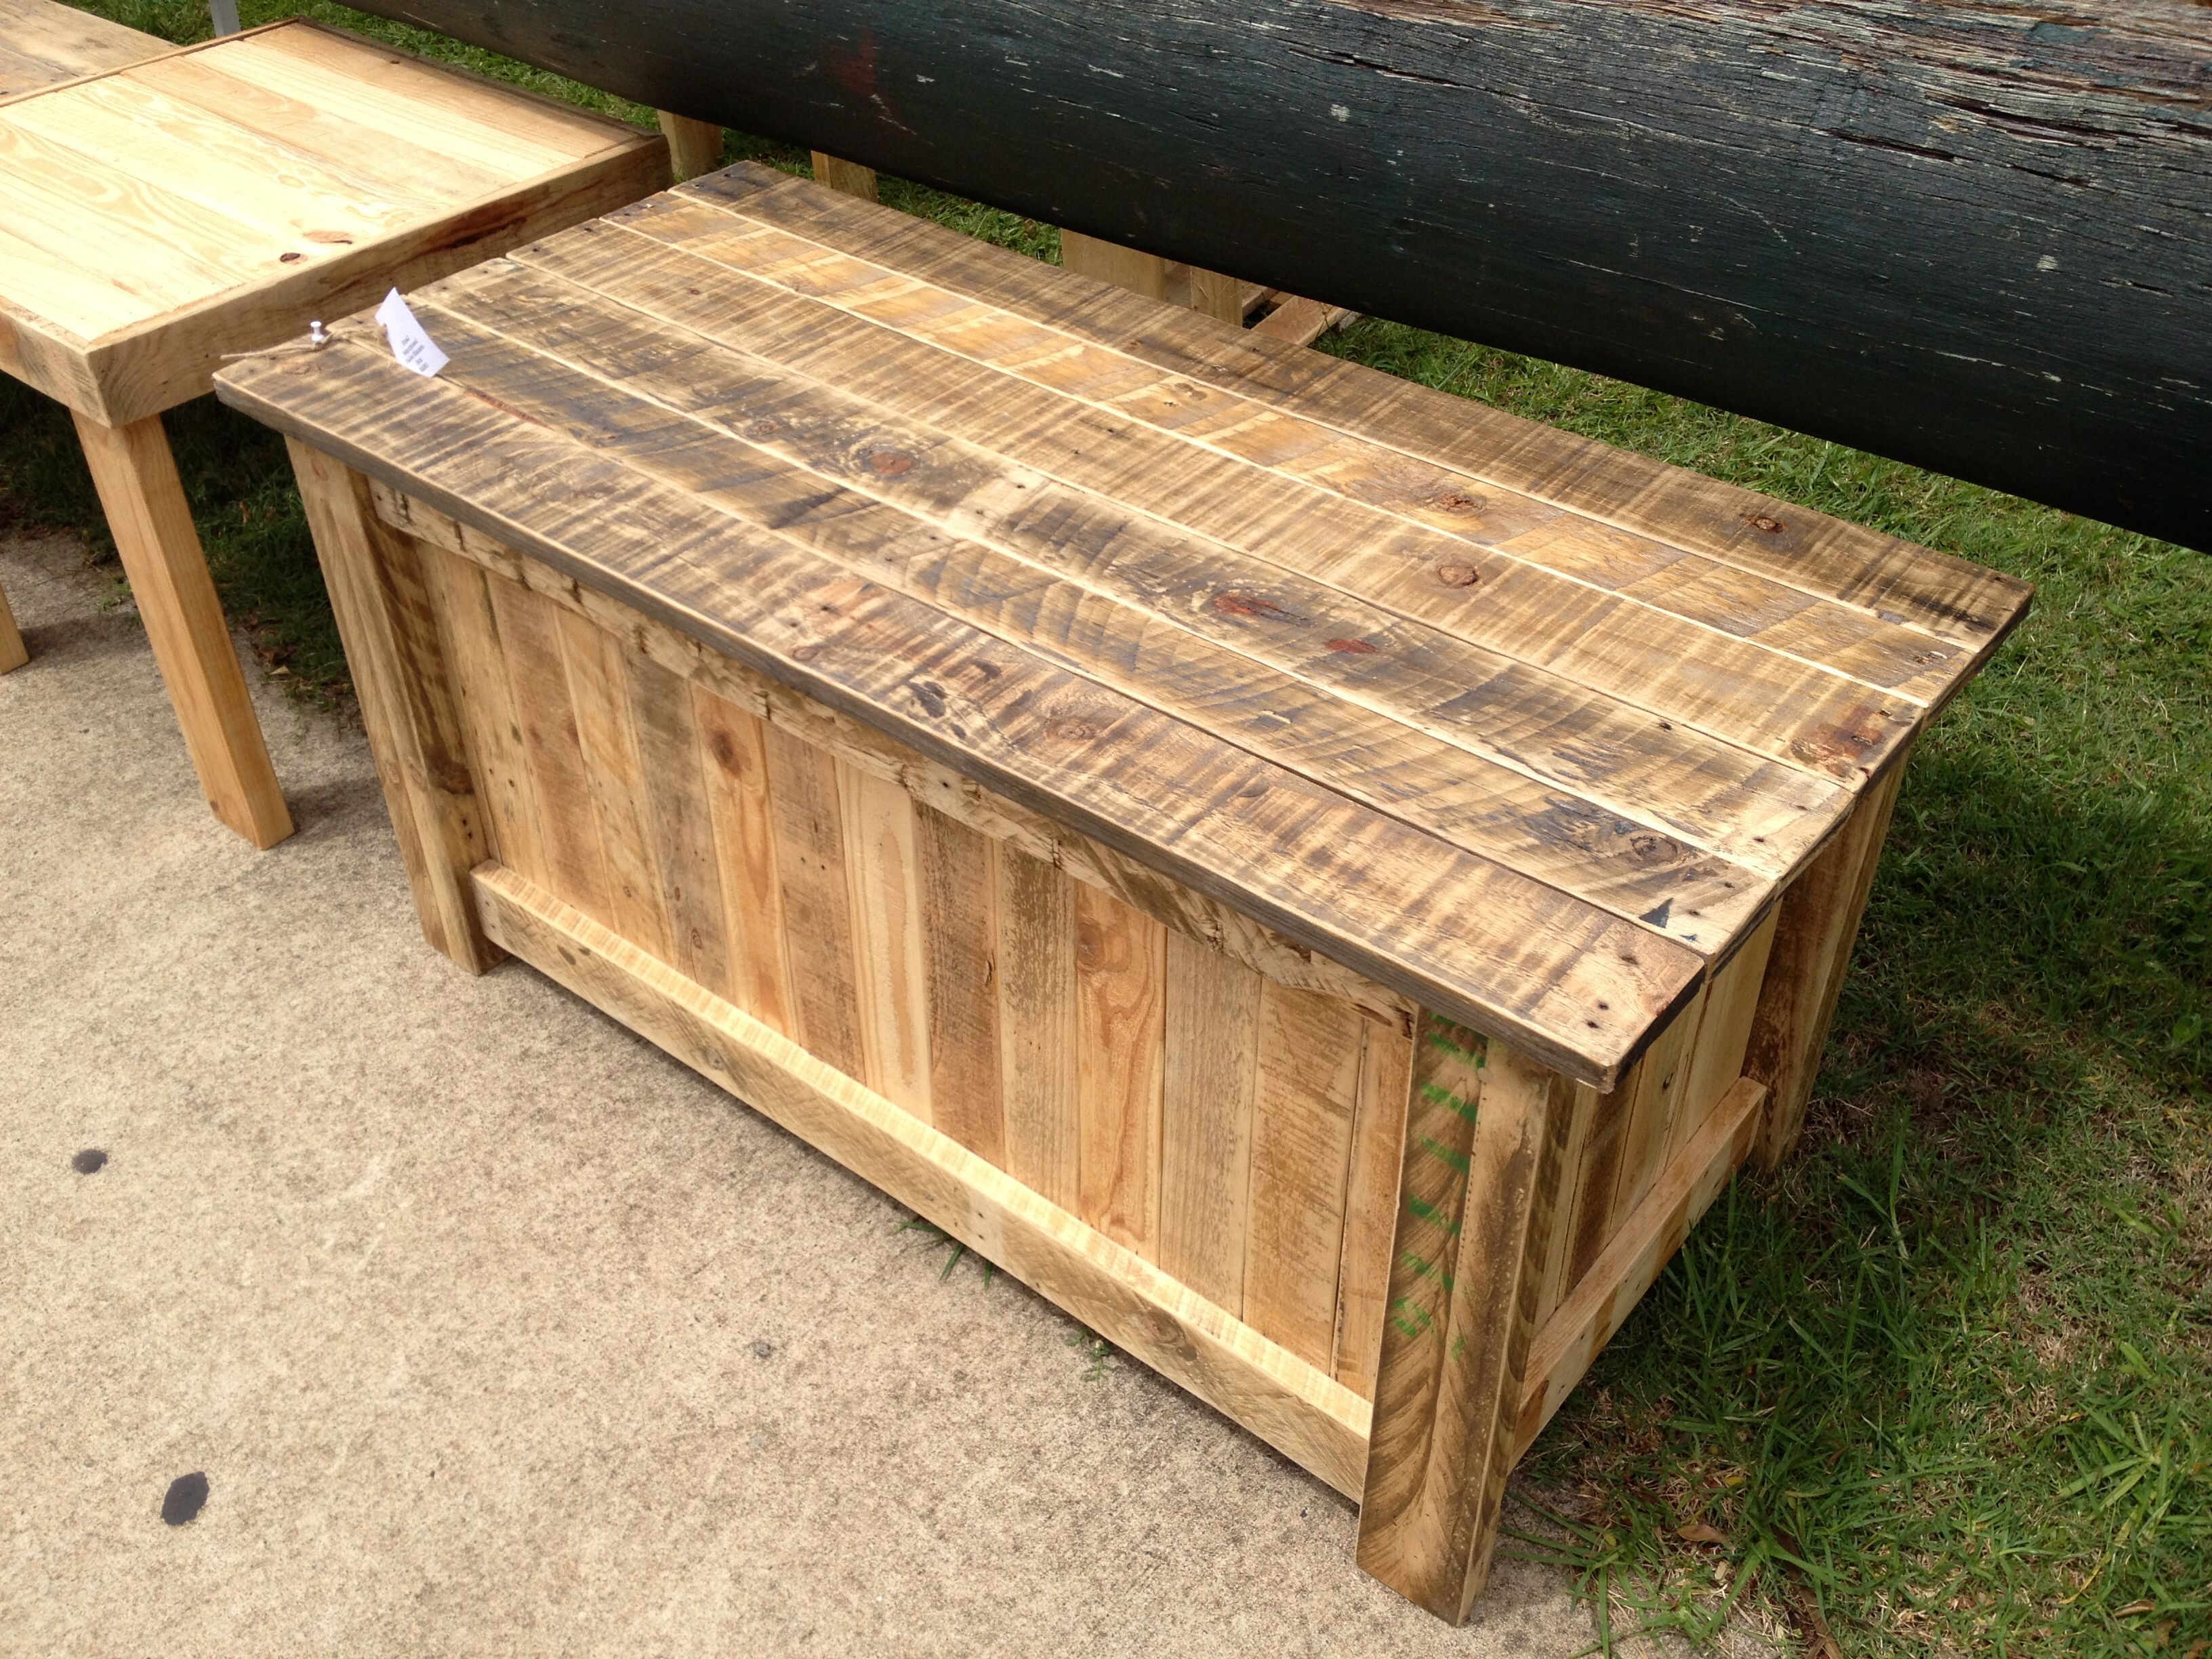 Wooden transport pallets have become increasingly popular for diy - Diy Pallet Furniture This Blanket Box Was Made From Recycled Pallets It Has A Very Cool Country Cottage Feel Would Be A Great Conversation Piece In Any